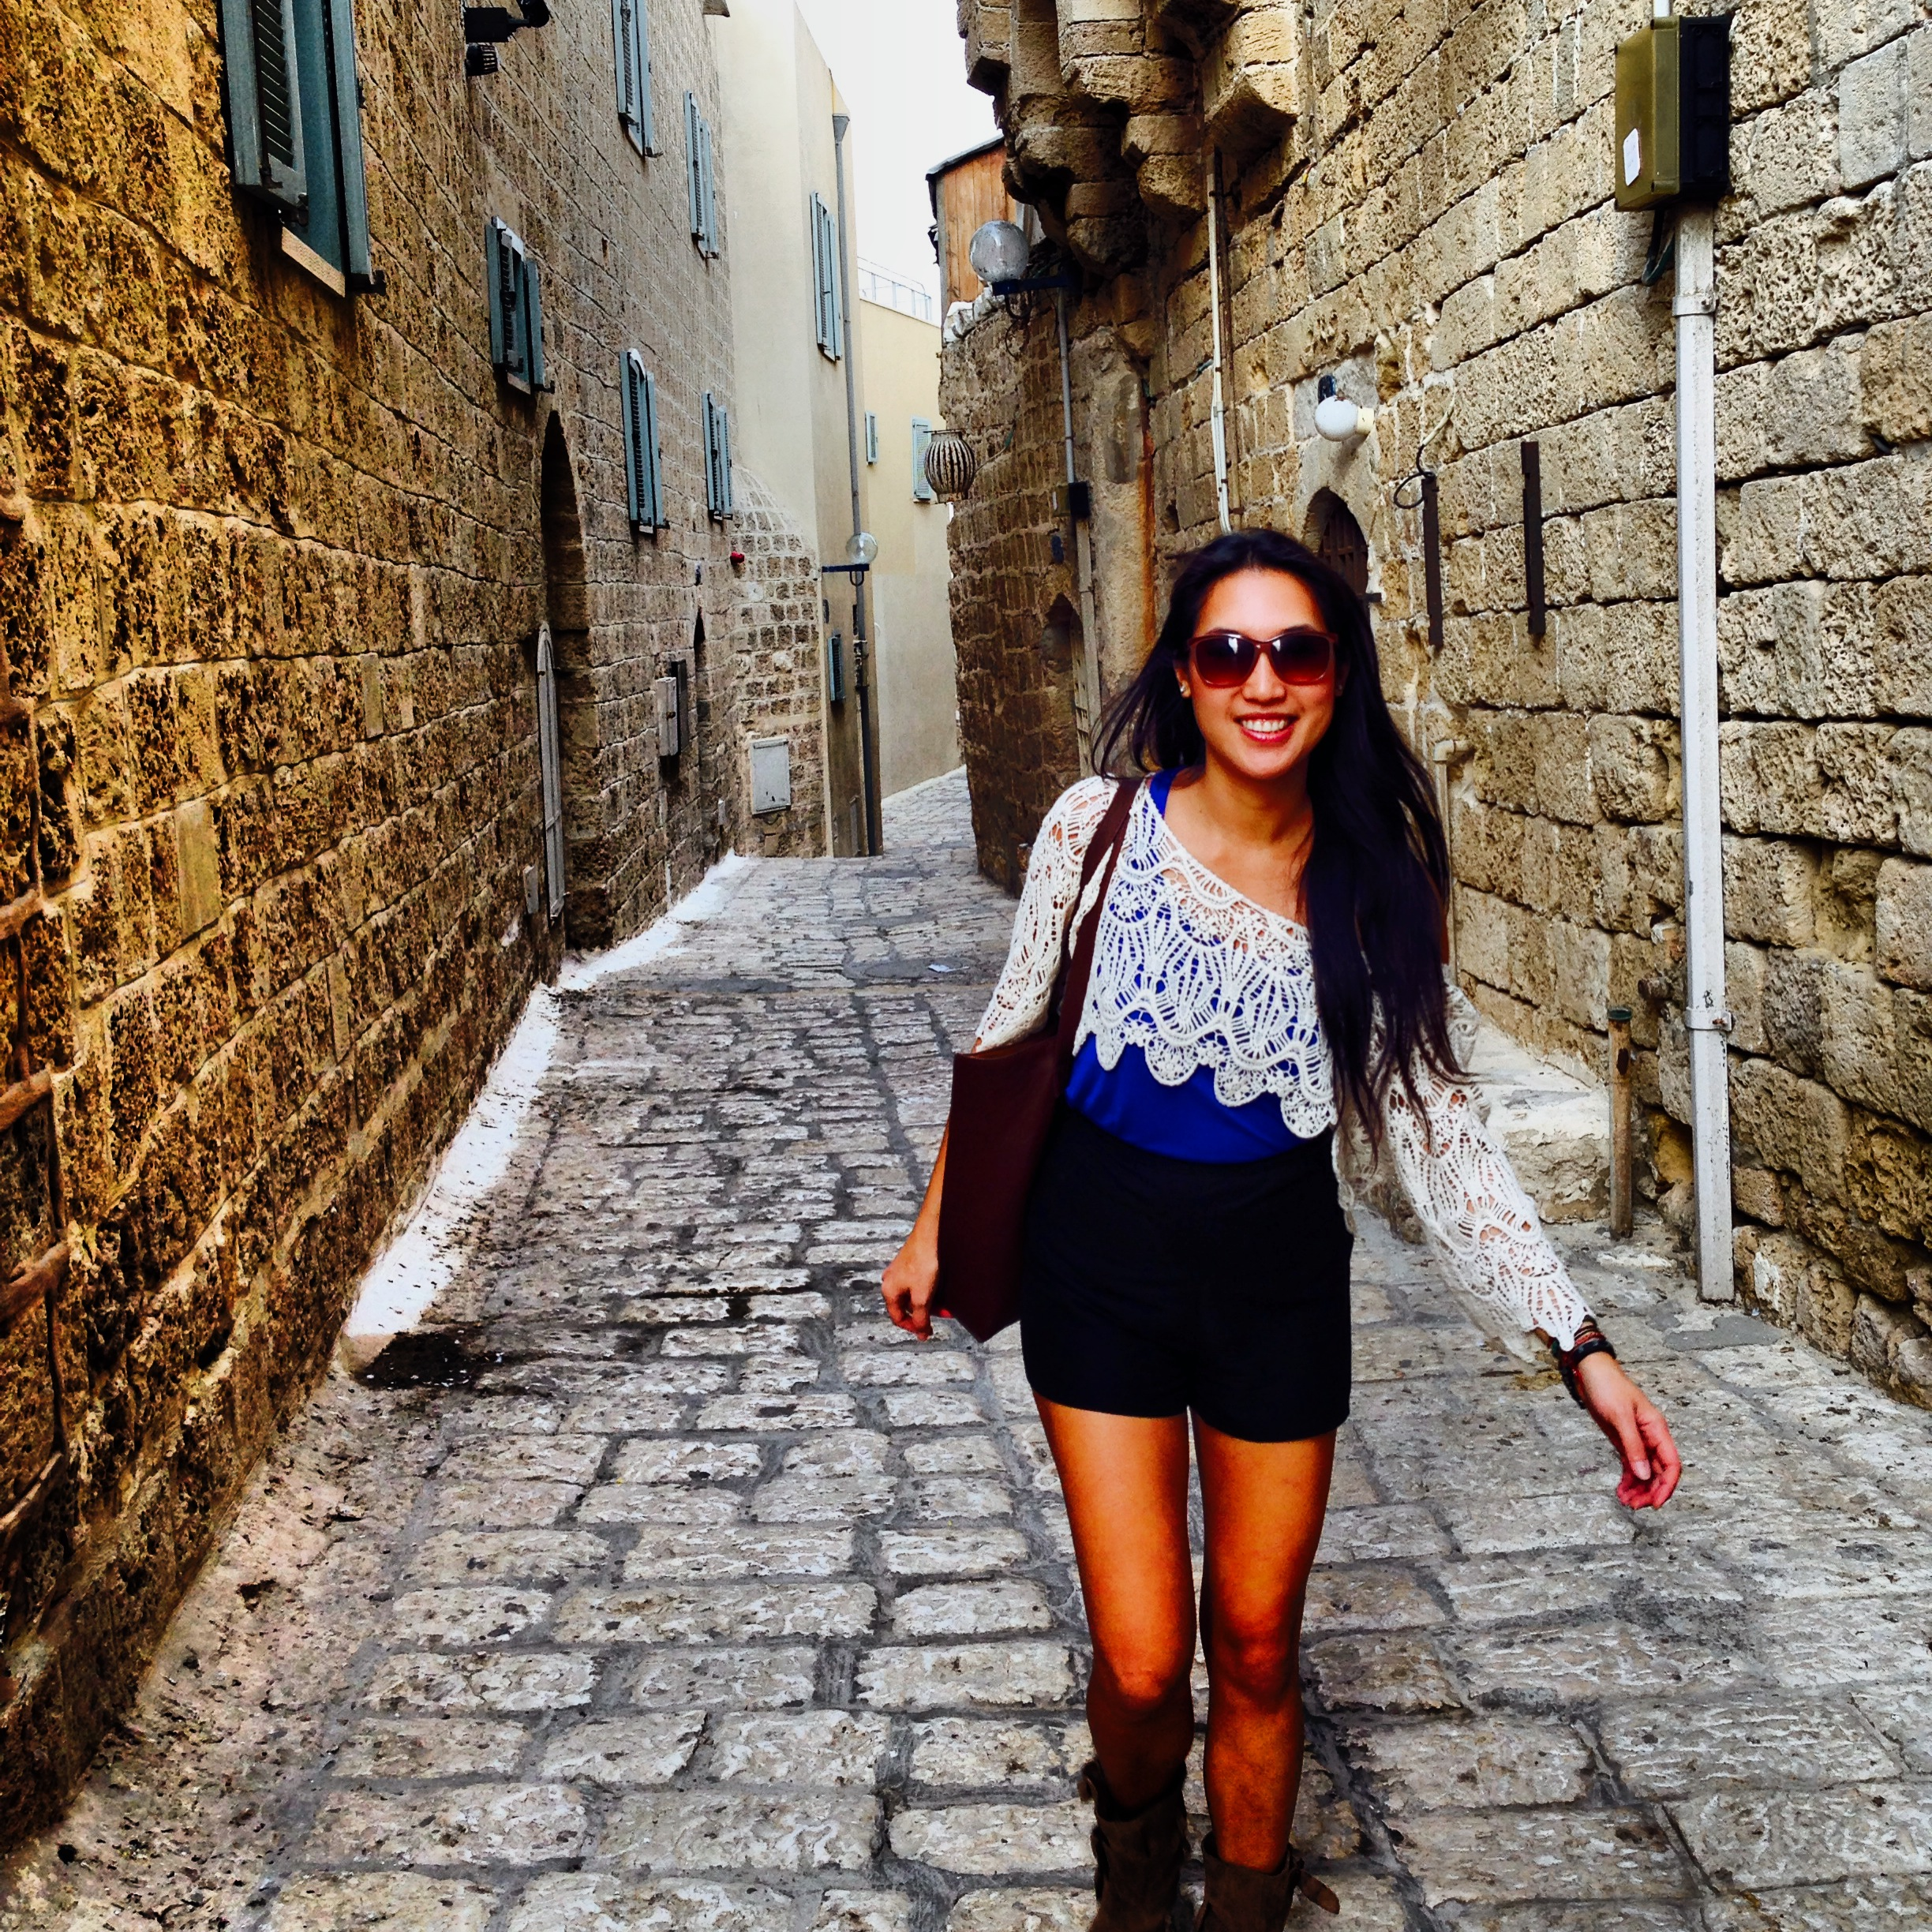 Walking through Old Jaffa